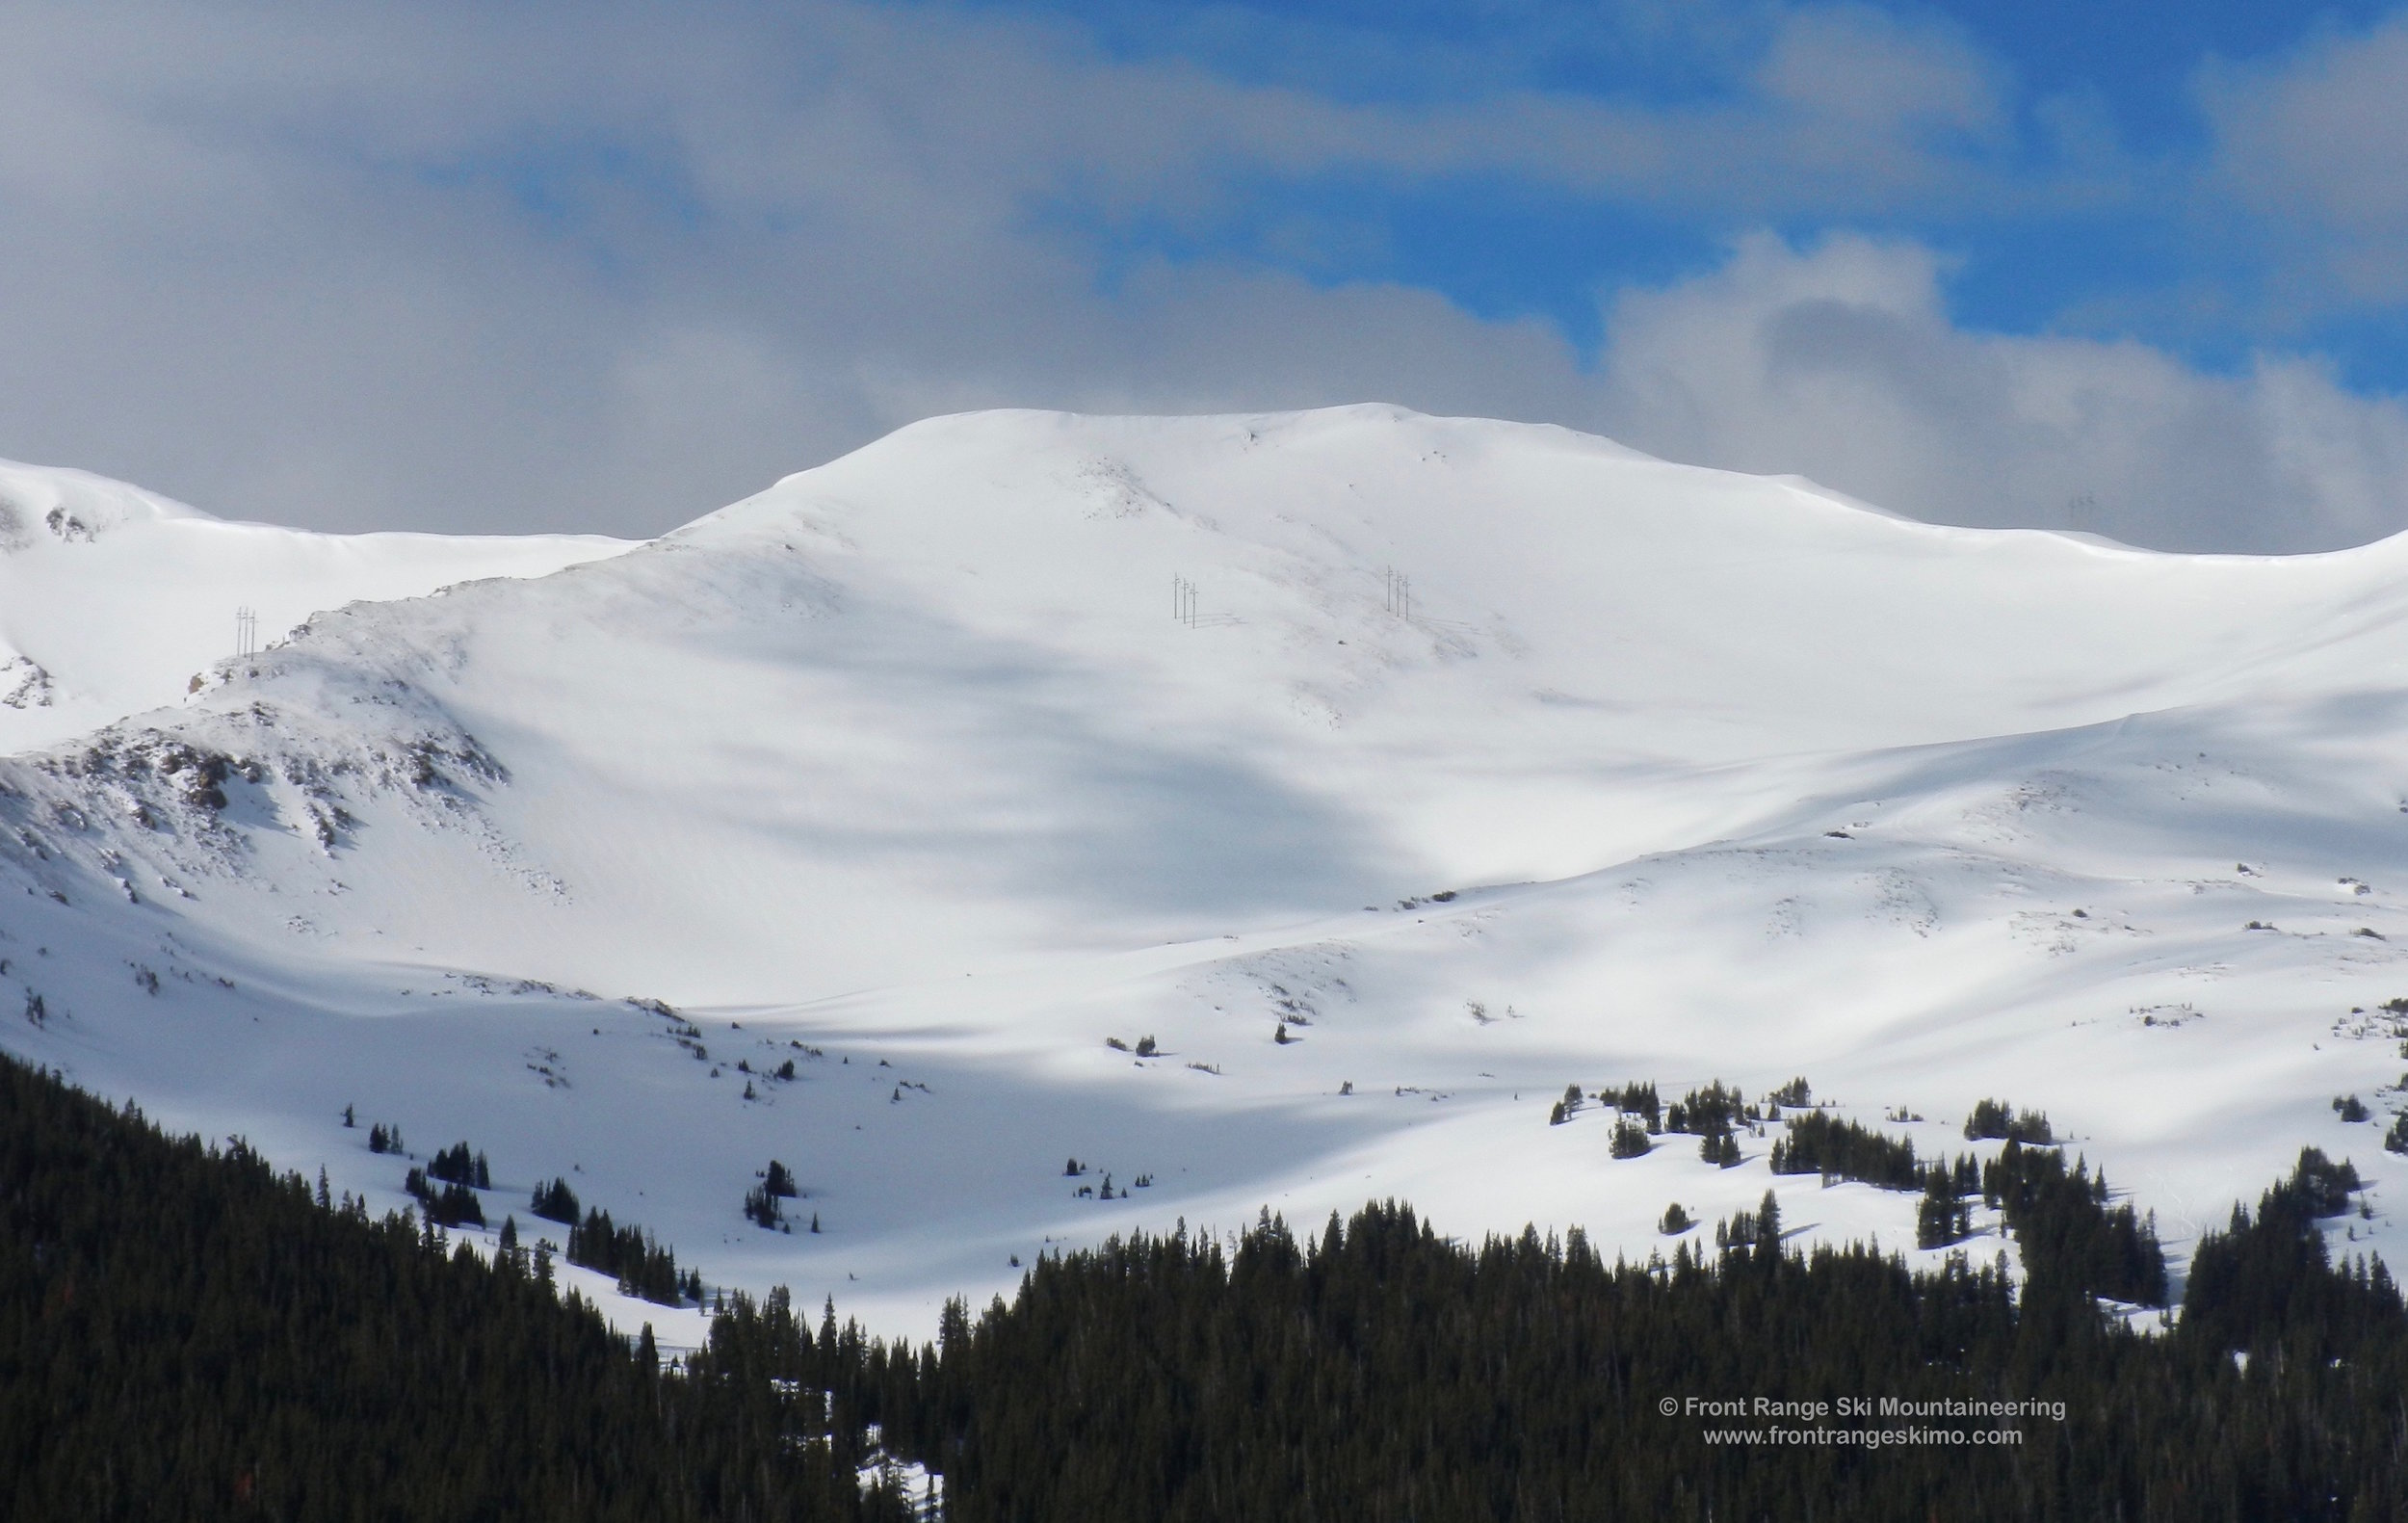 The South Twin 12,700' Peak at Jones Pass with Power Line Bowl in the middle of the slope.